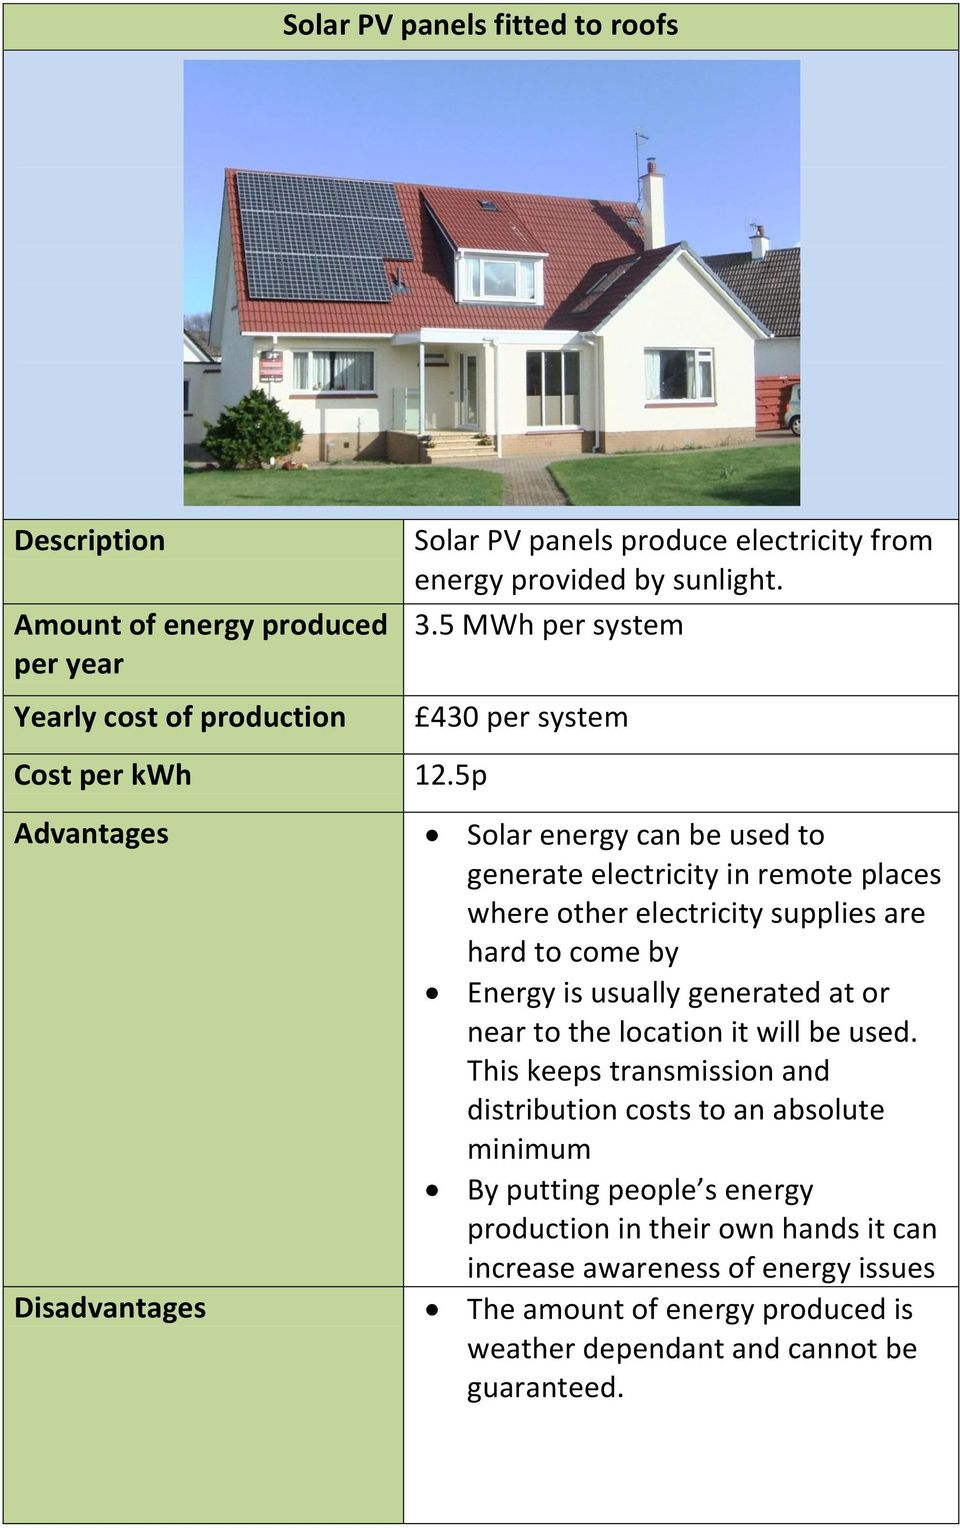 Energy is usually generated at or near to the location it will be used.